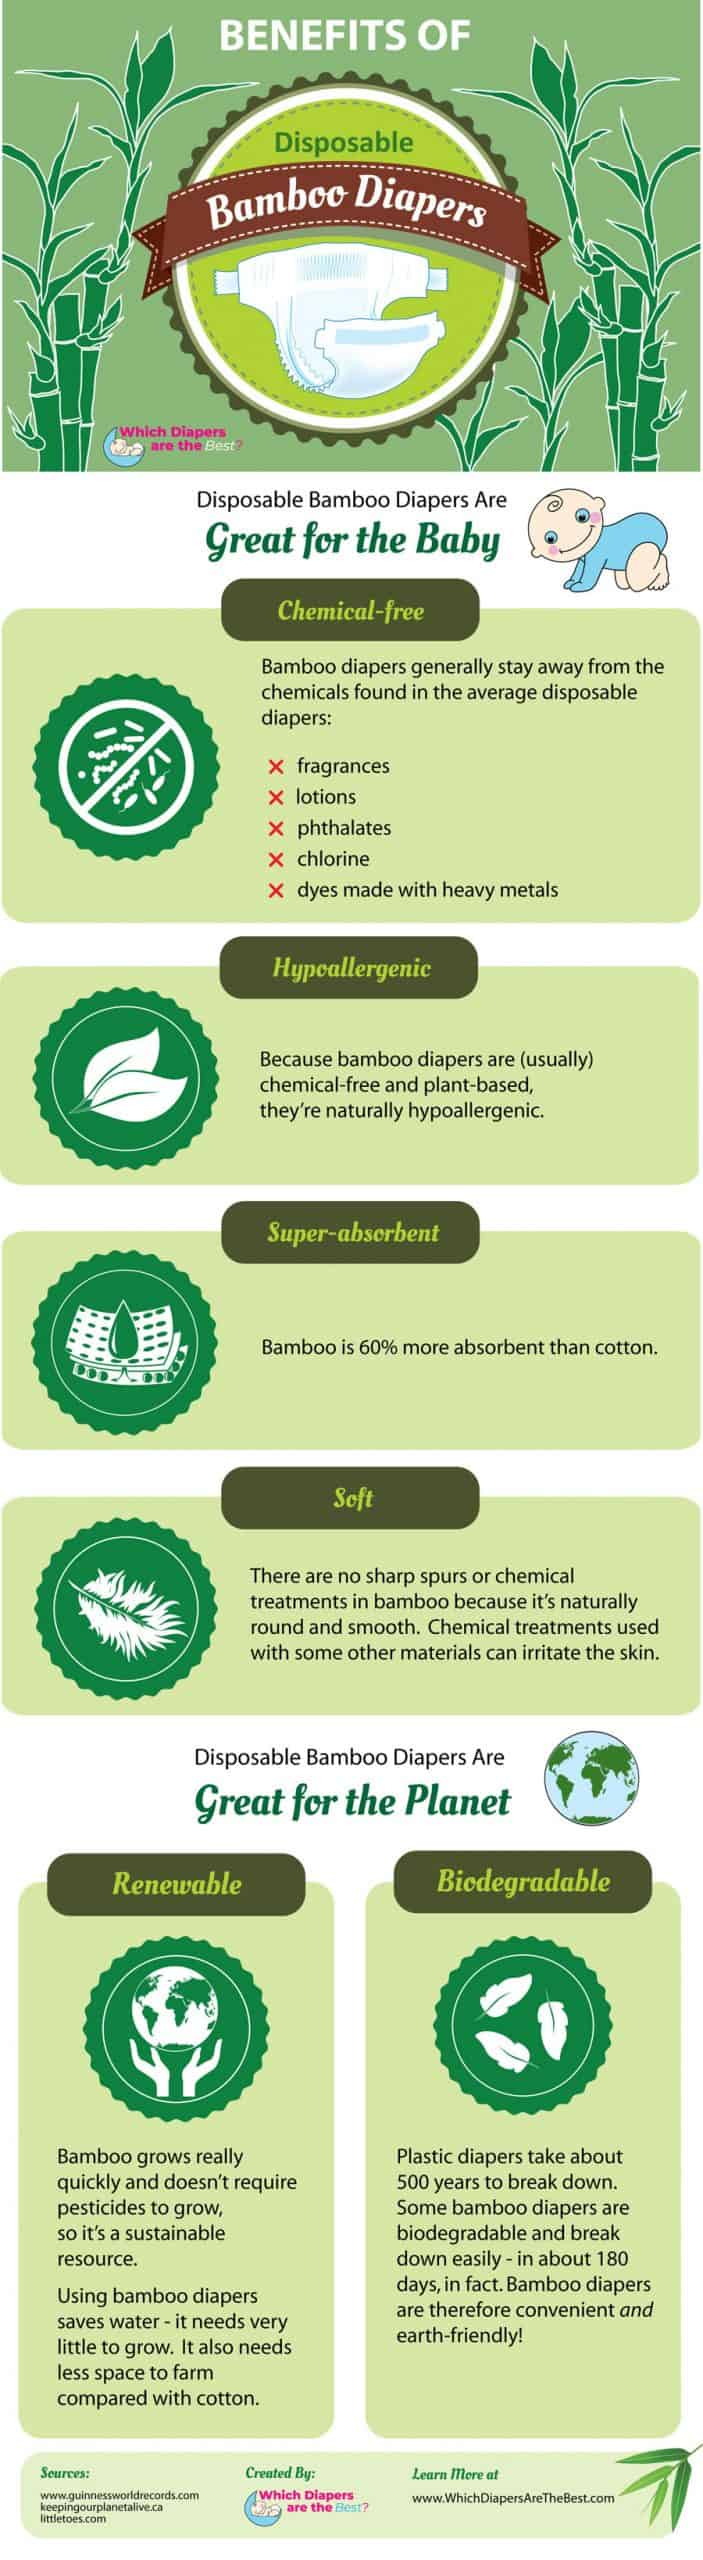 Benefits of Bamboo Diapers